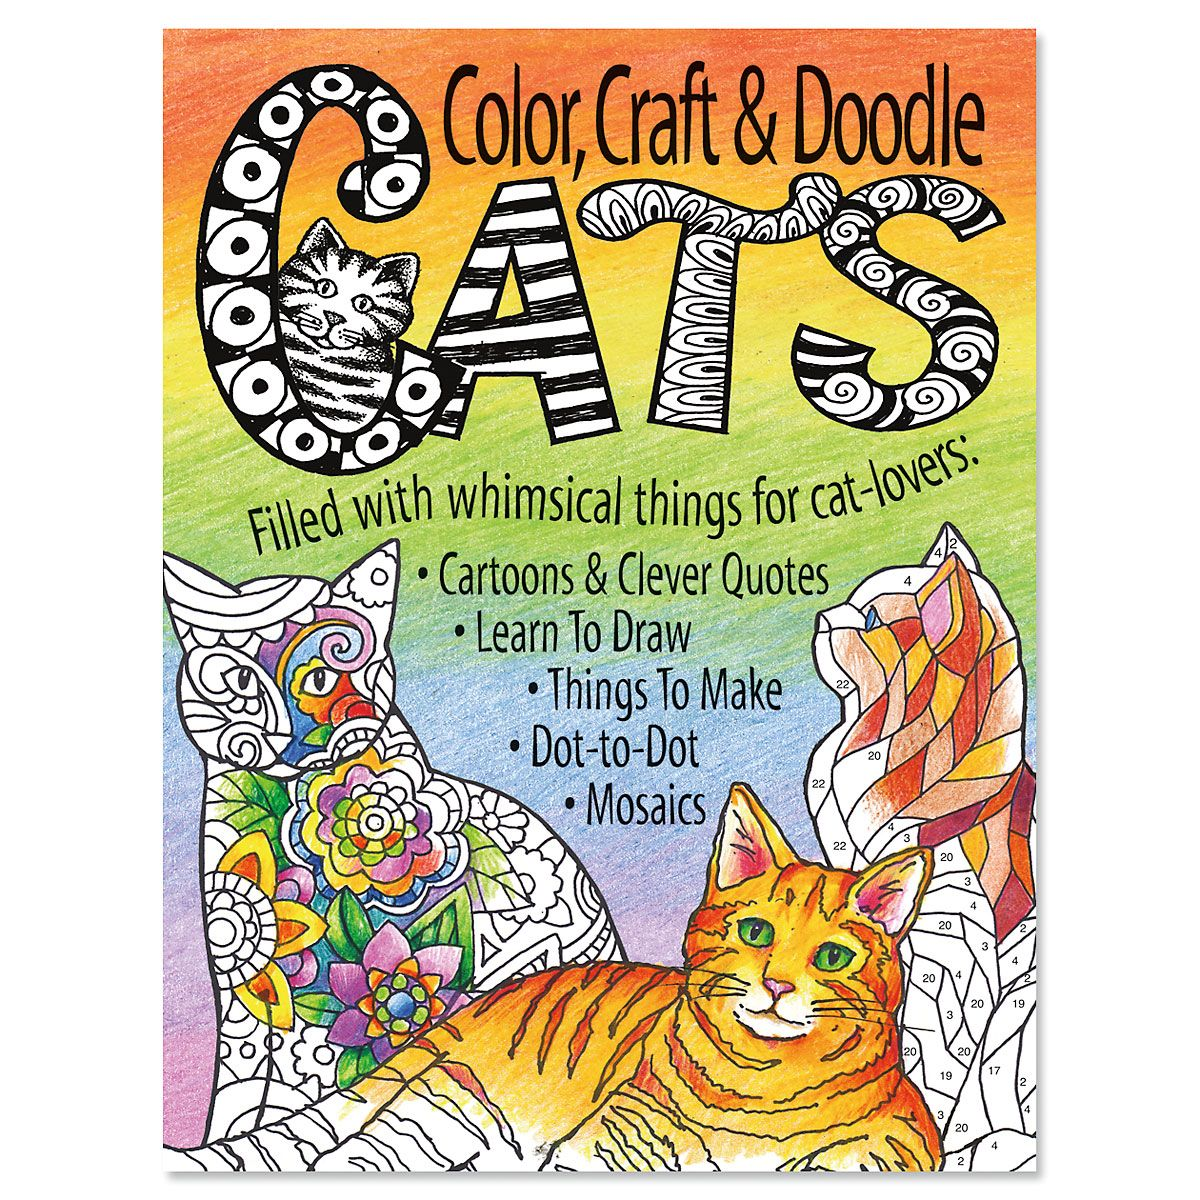 Color, Craft & Doodle Cats